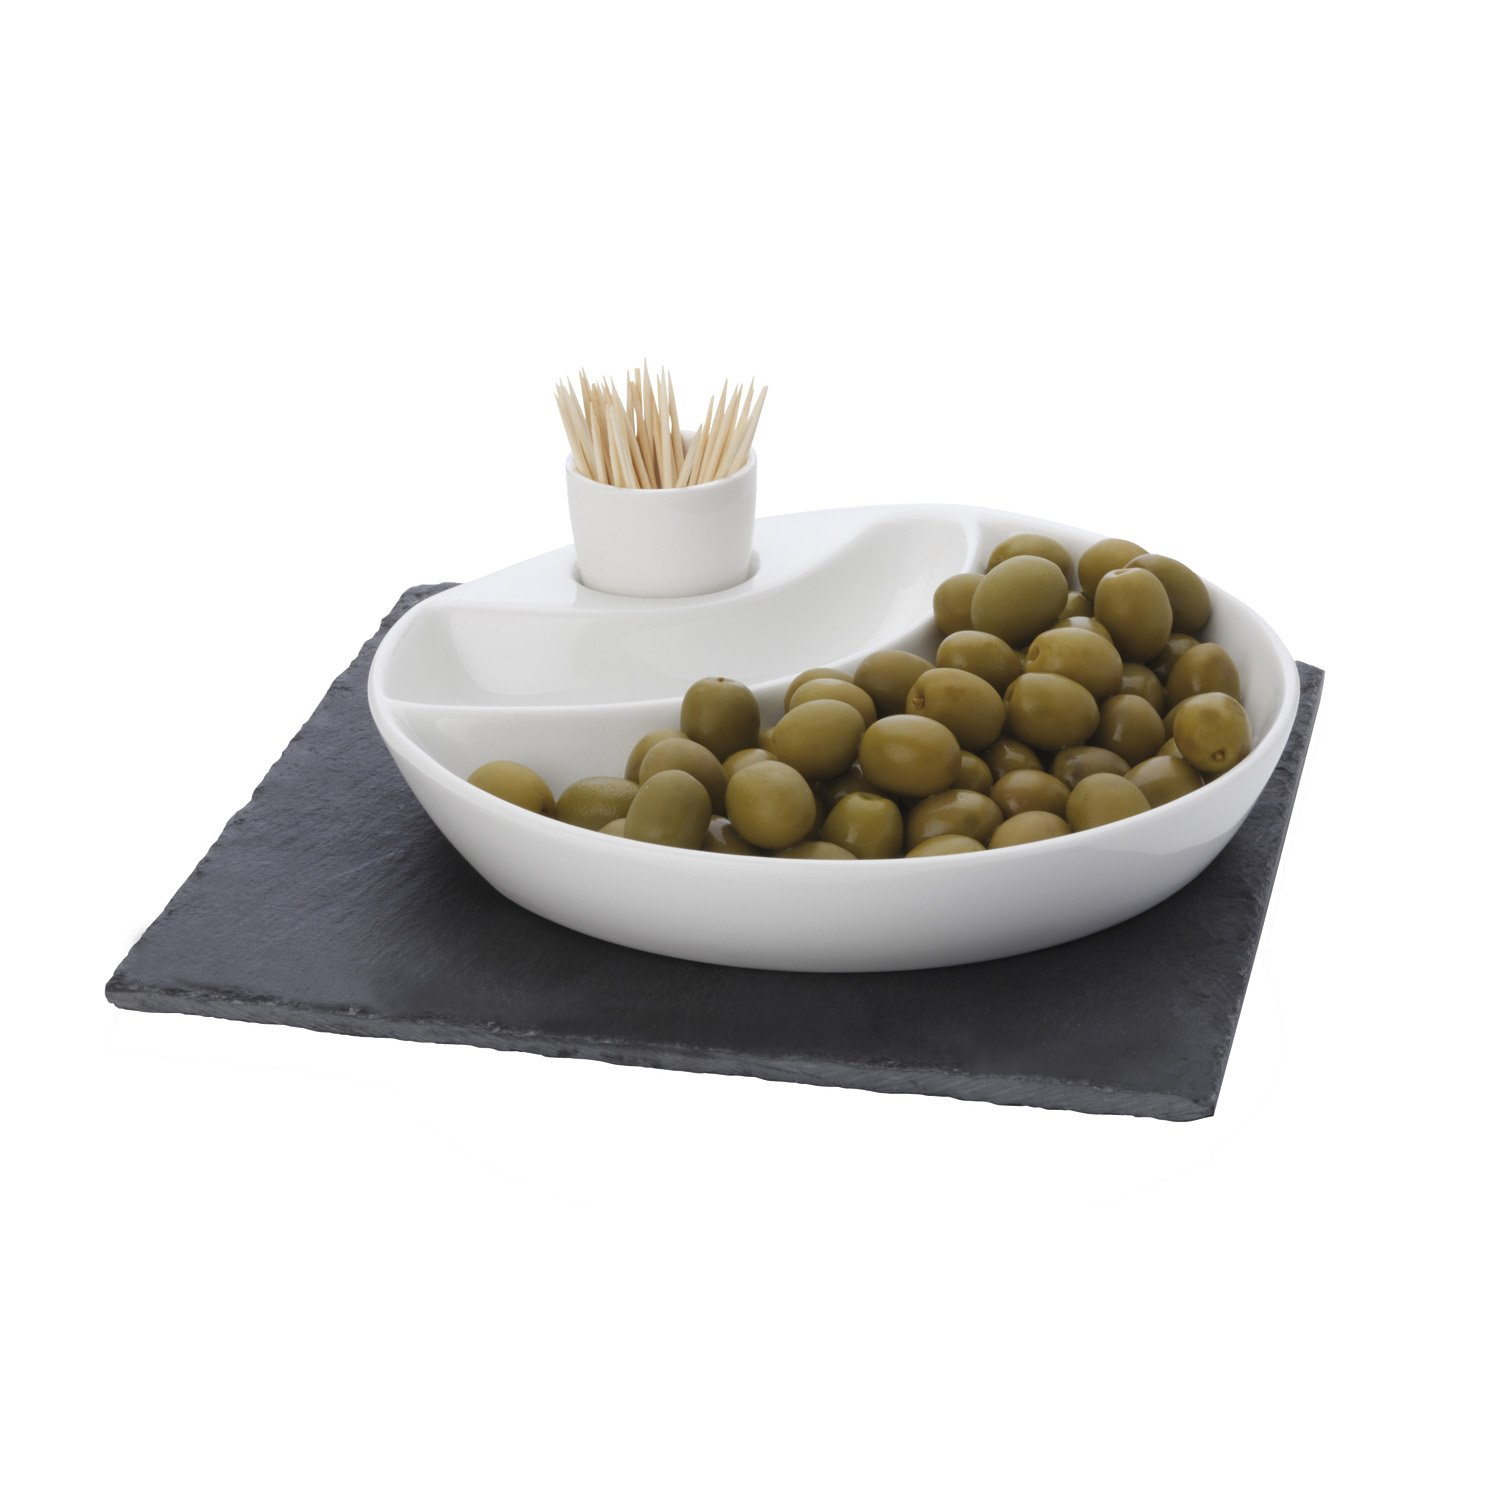 Maxwell and Williams Basics Slate 3-Piece Square Olive Dish, White Fitz and Floyd LH9006